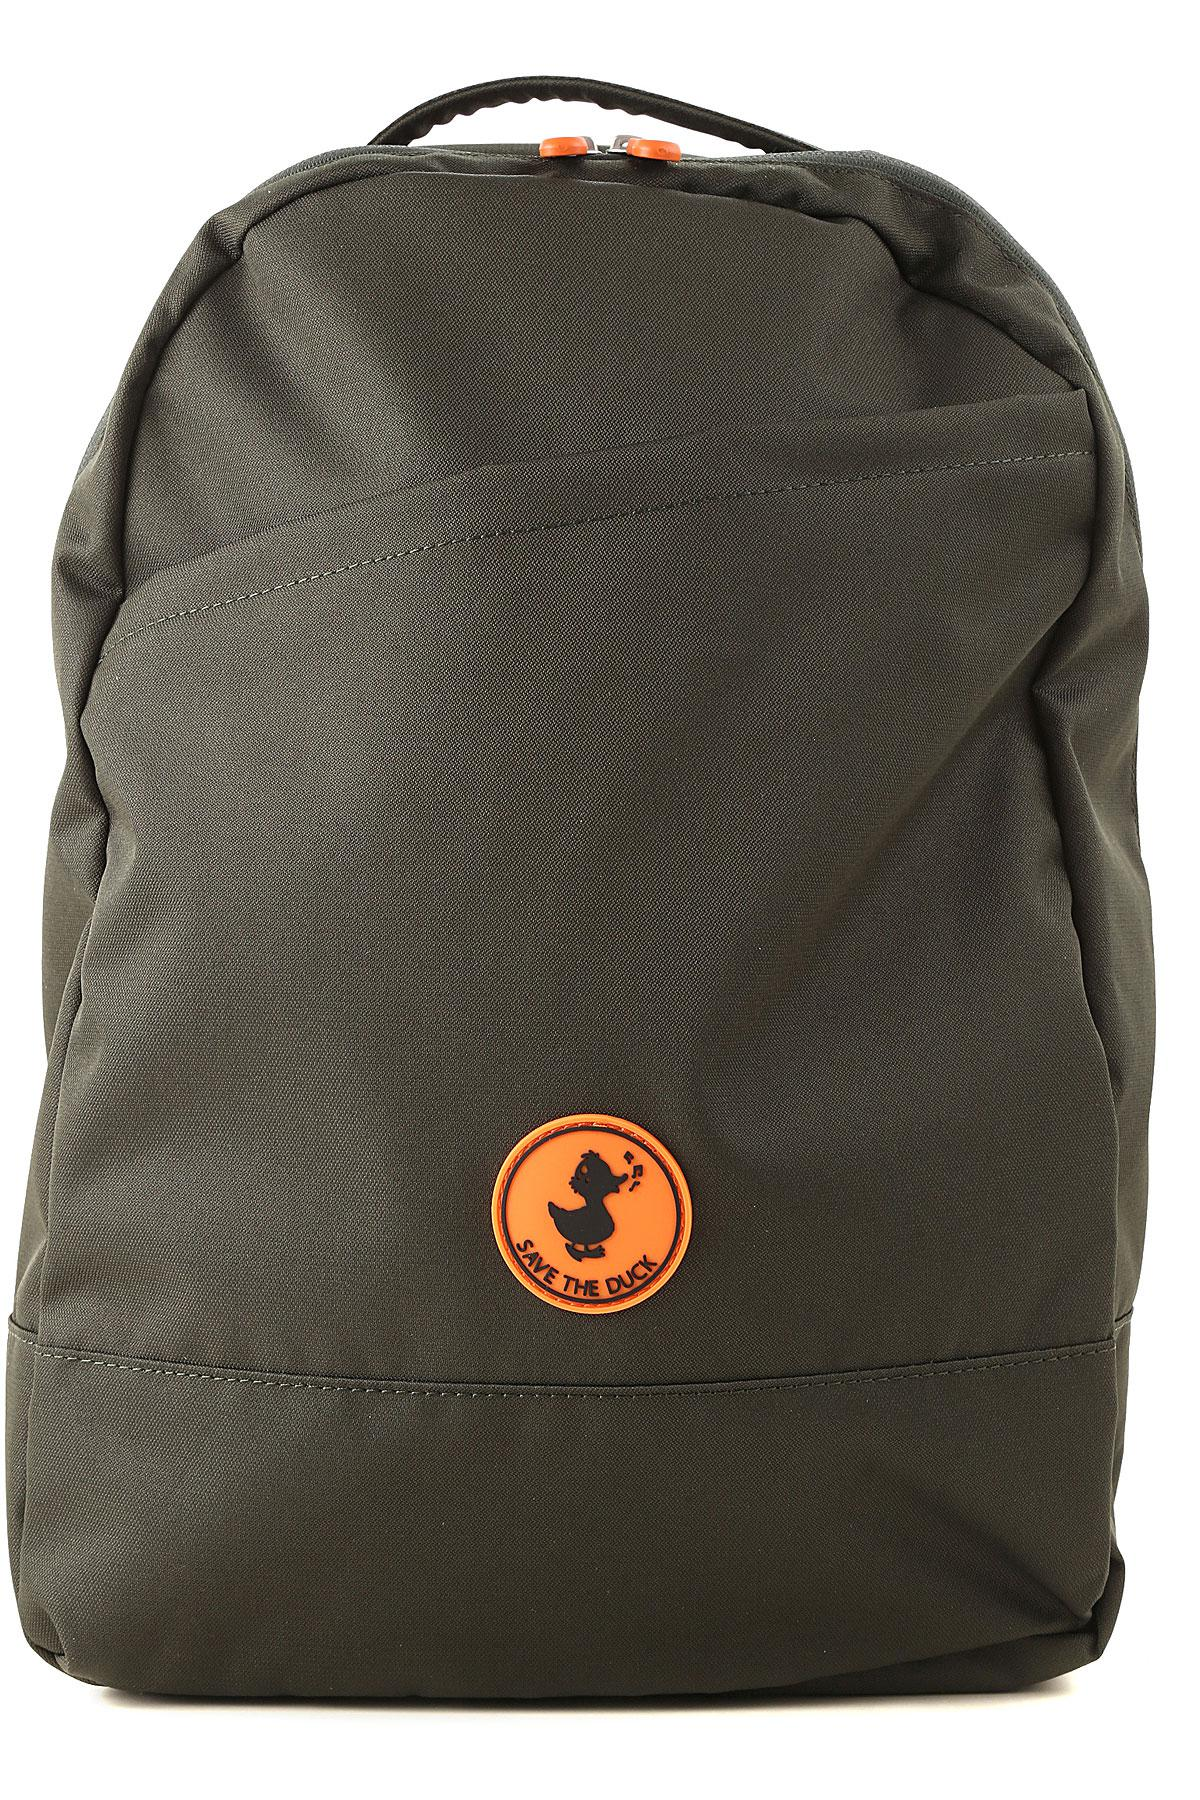 Lyst - Save The Duck Backpack For Women On Sale in Green a971ae011378c